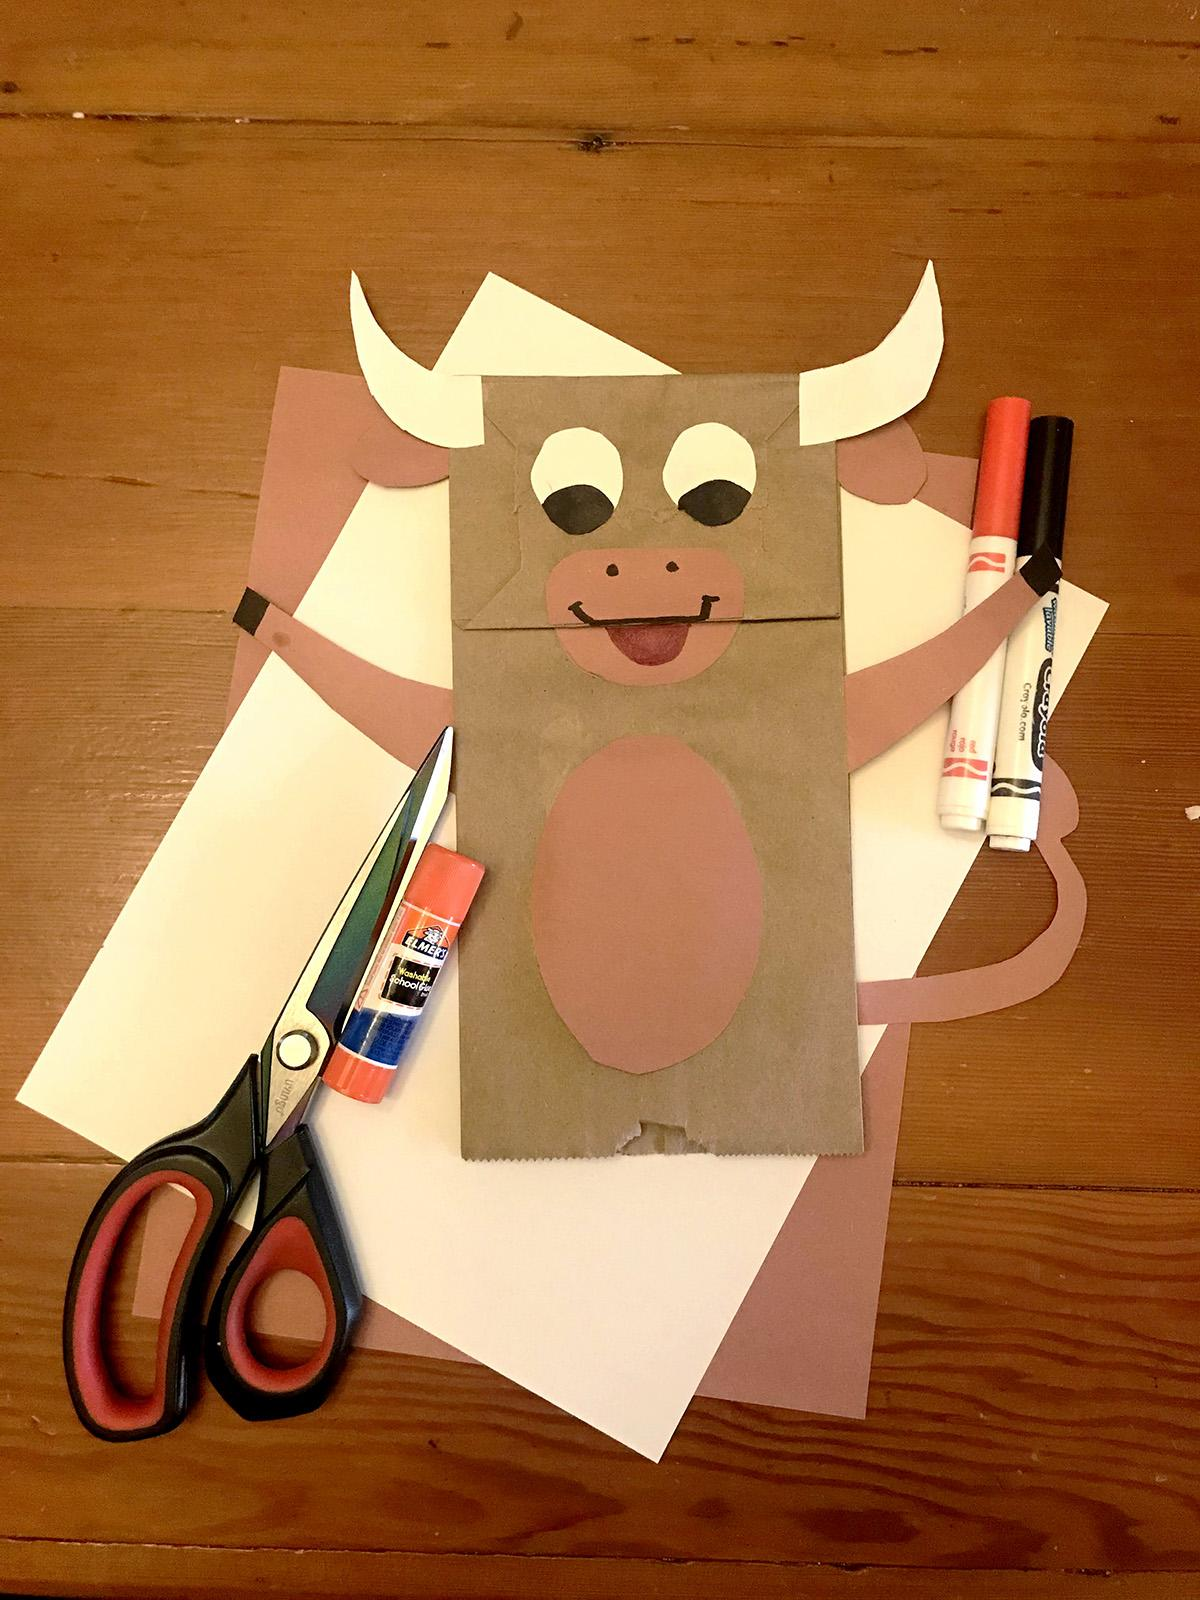 A photograph of a paper bag that looks like an ox.